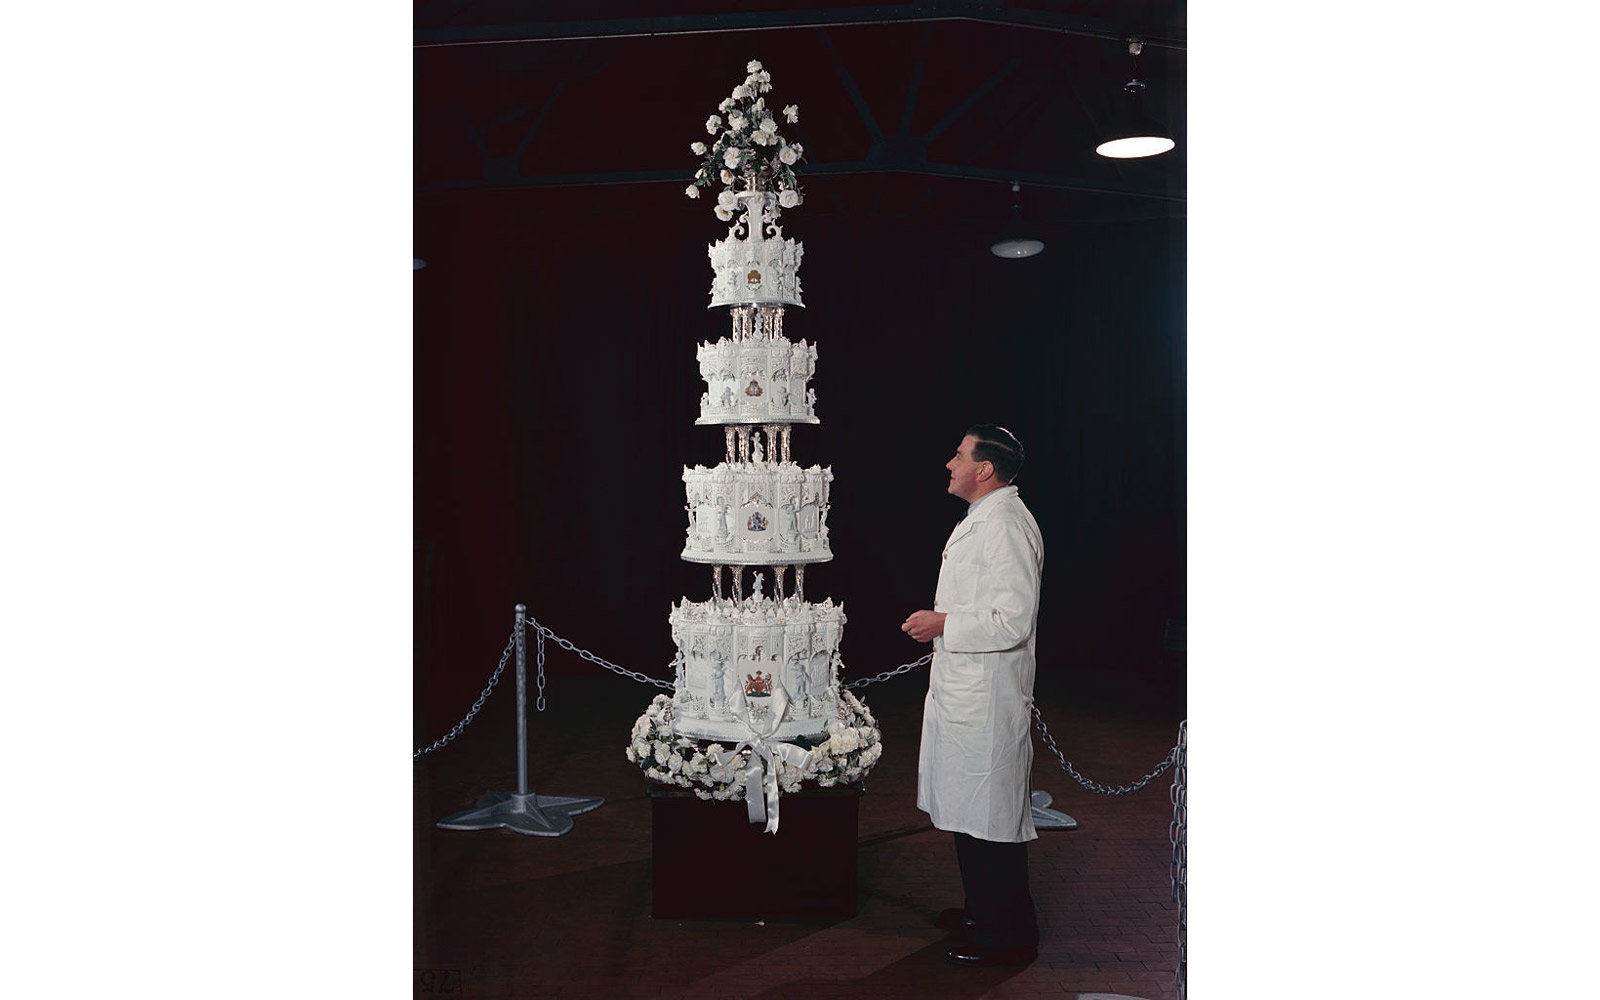 A man standing by the nine-foot high wedding cake made at Huntley and Palmers Factory in Reading, Berkshire, for the wedding of Princess Elizabeth (later Queen Elizabeth II) to Phillip Mountbatten